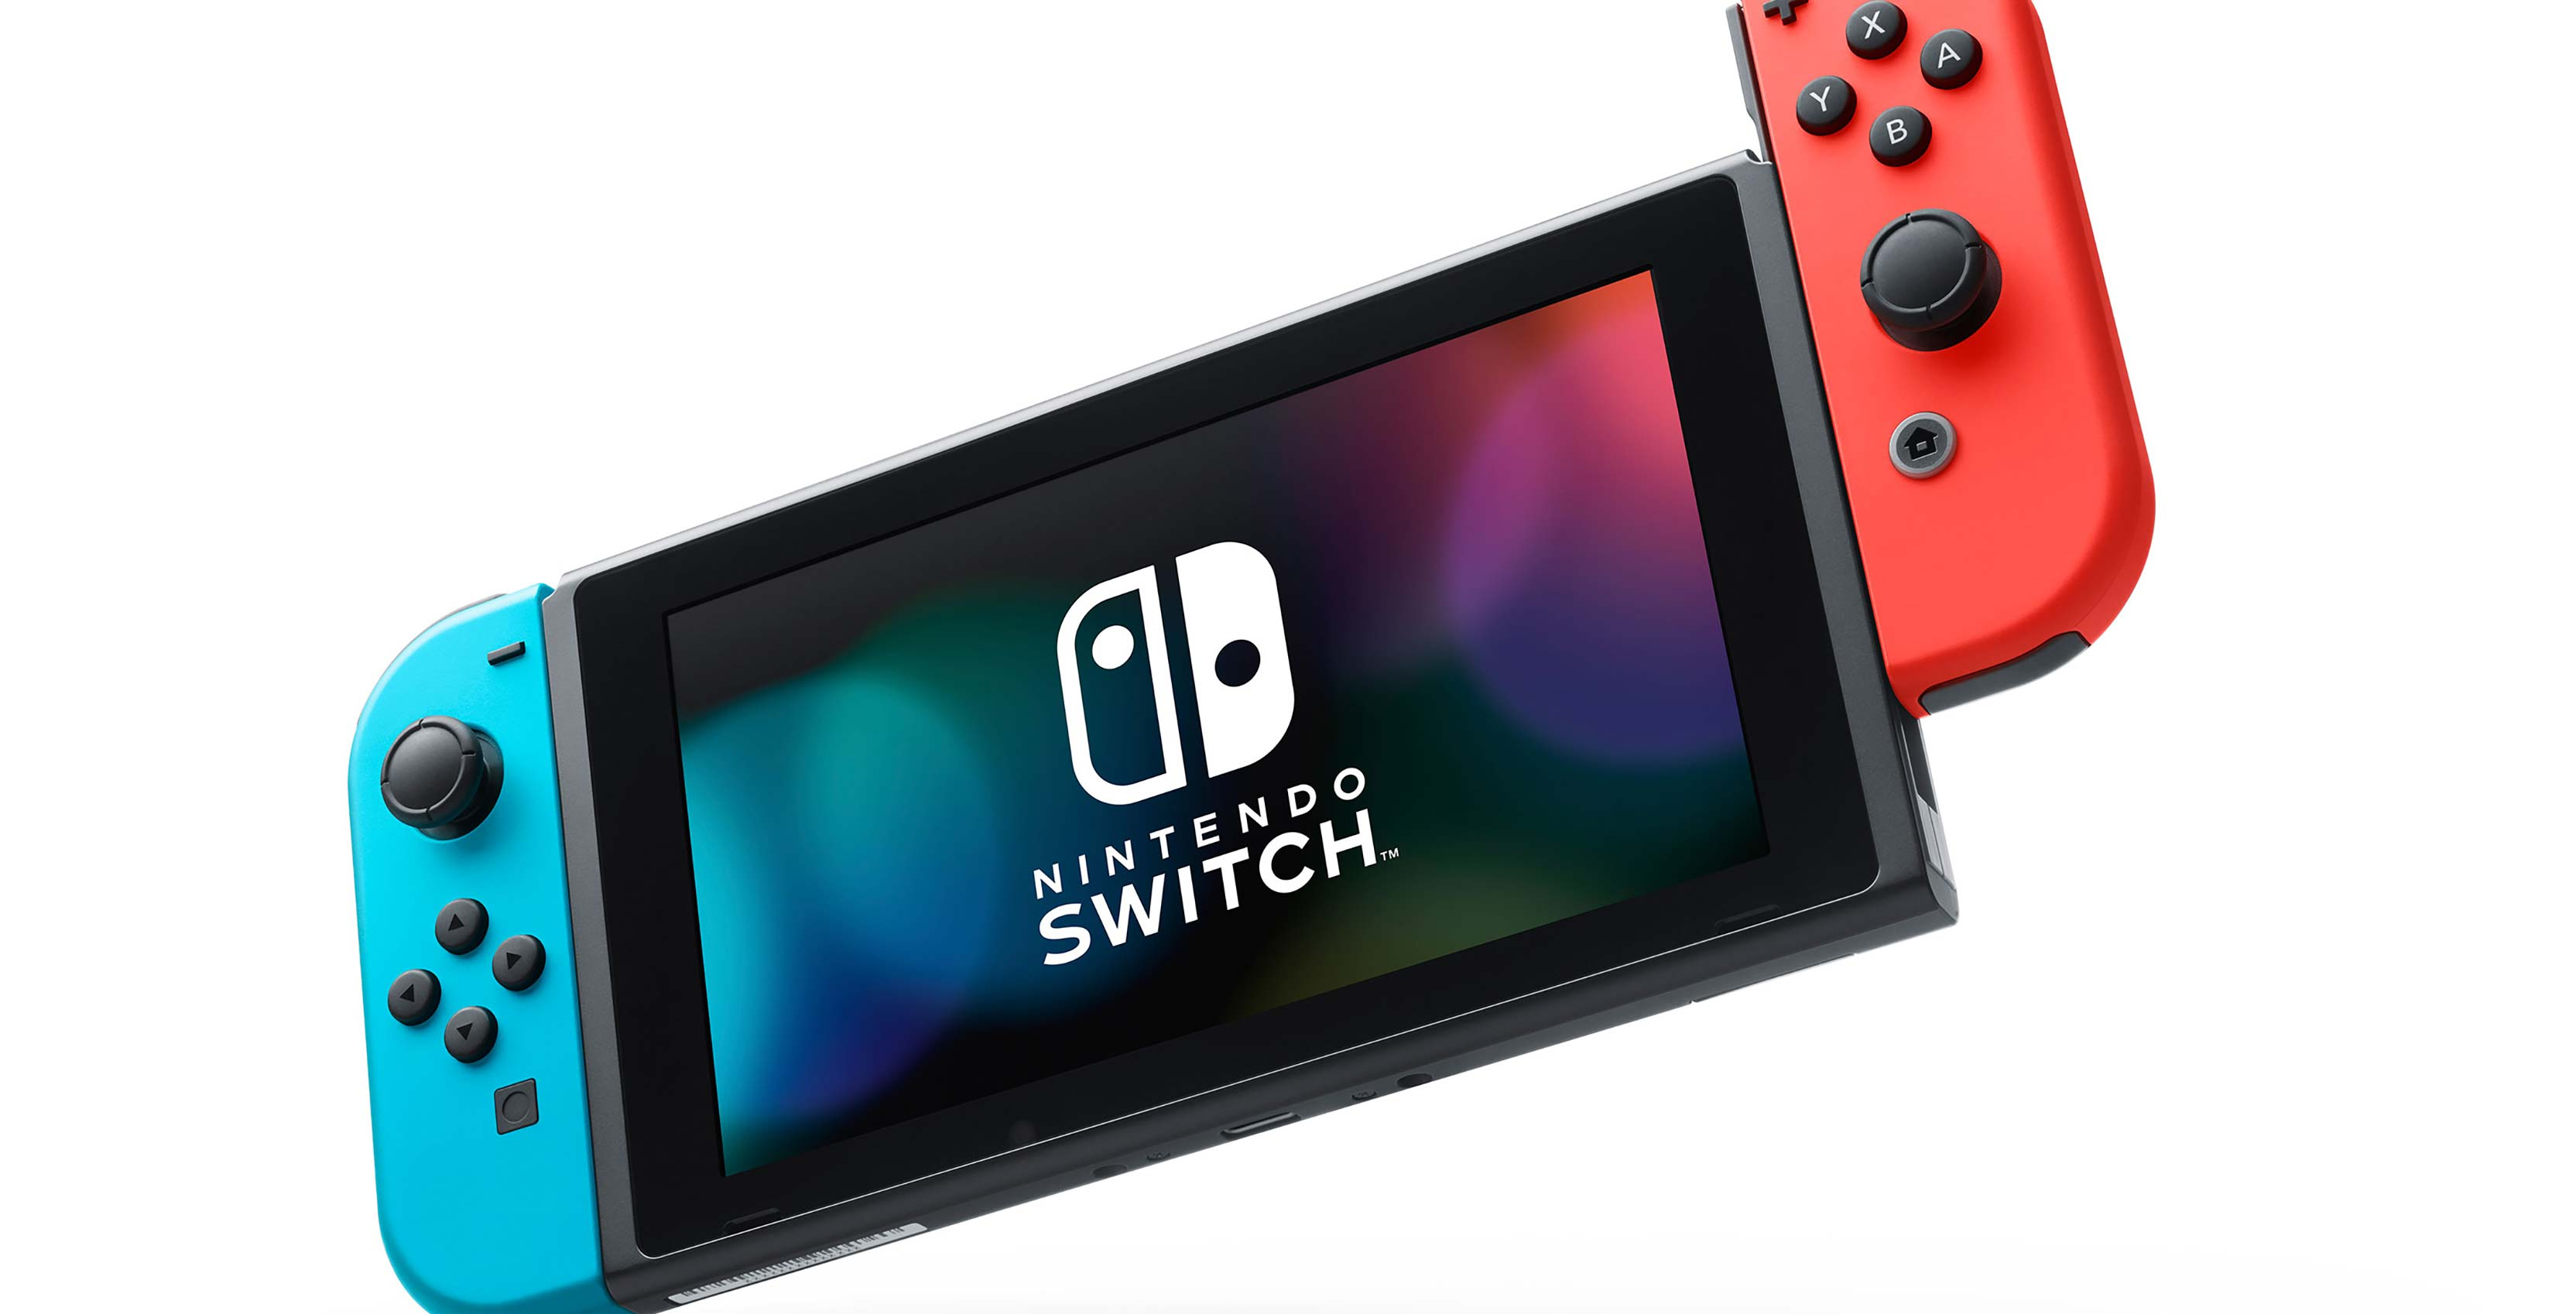 Nintendo Switch Operating System Leaks In New Video